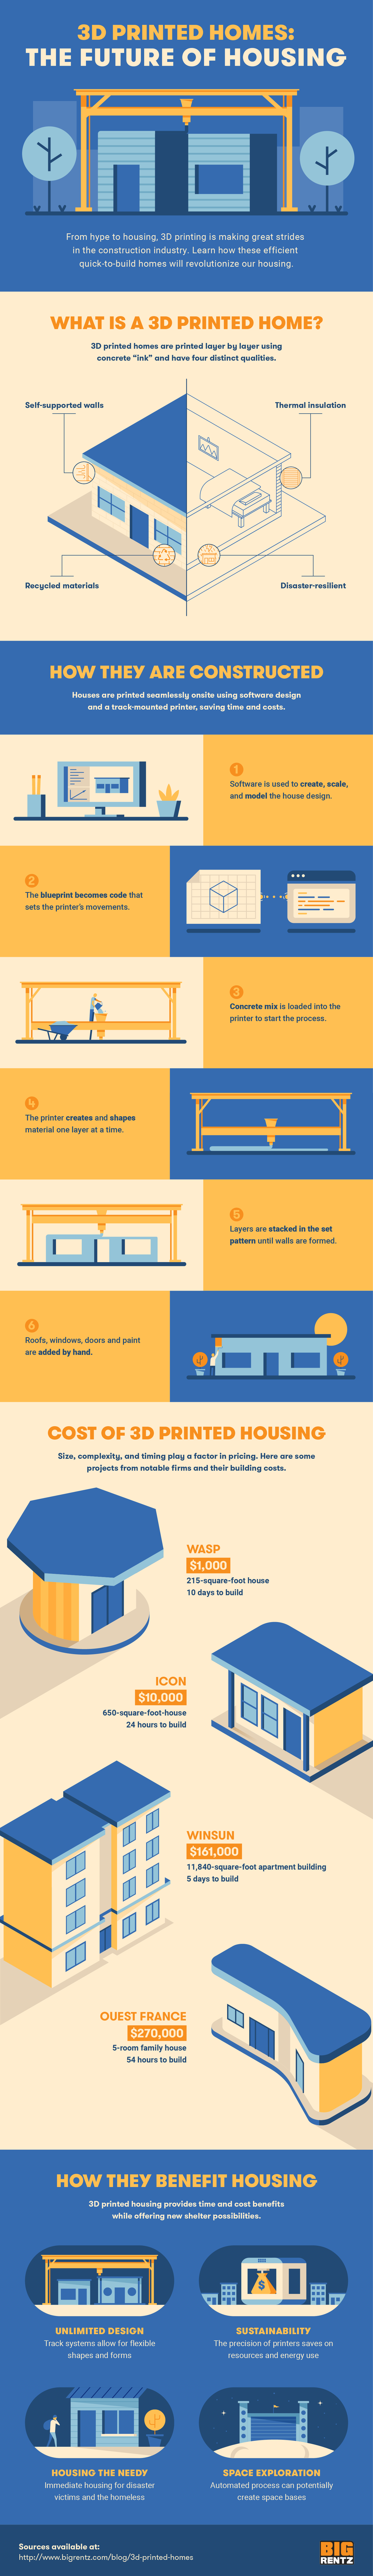 Infographic describing what a 3D printed home is, how they are constructed, their costs, and how they benefit housing.